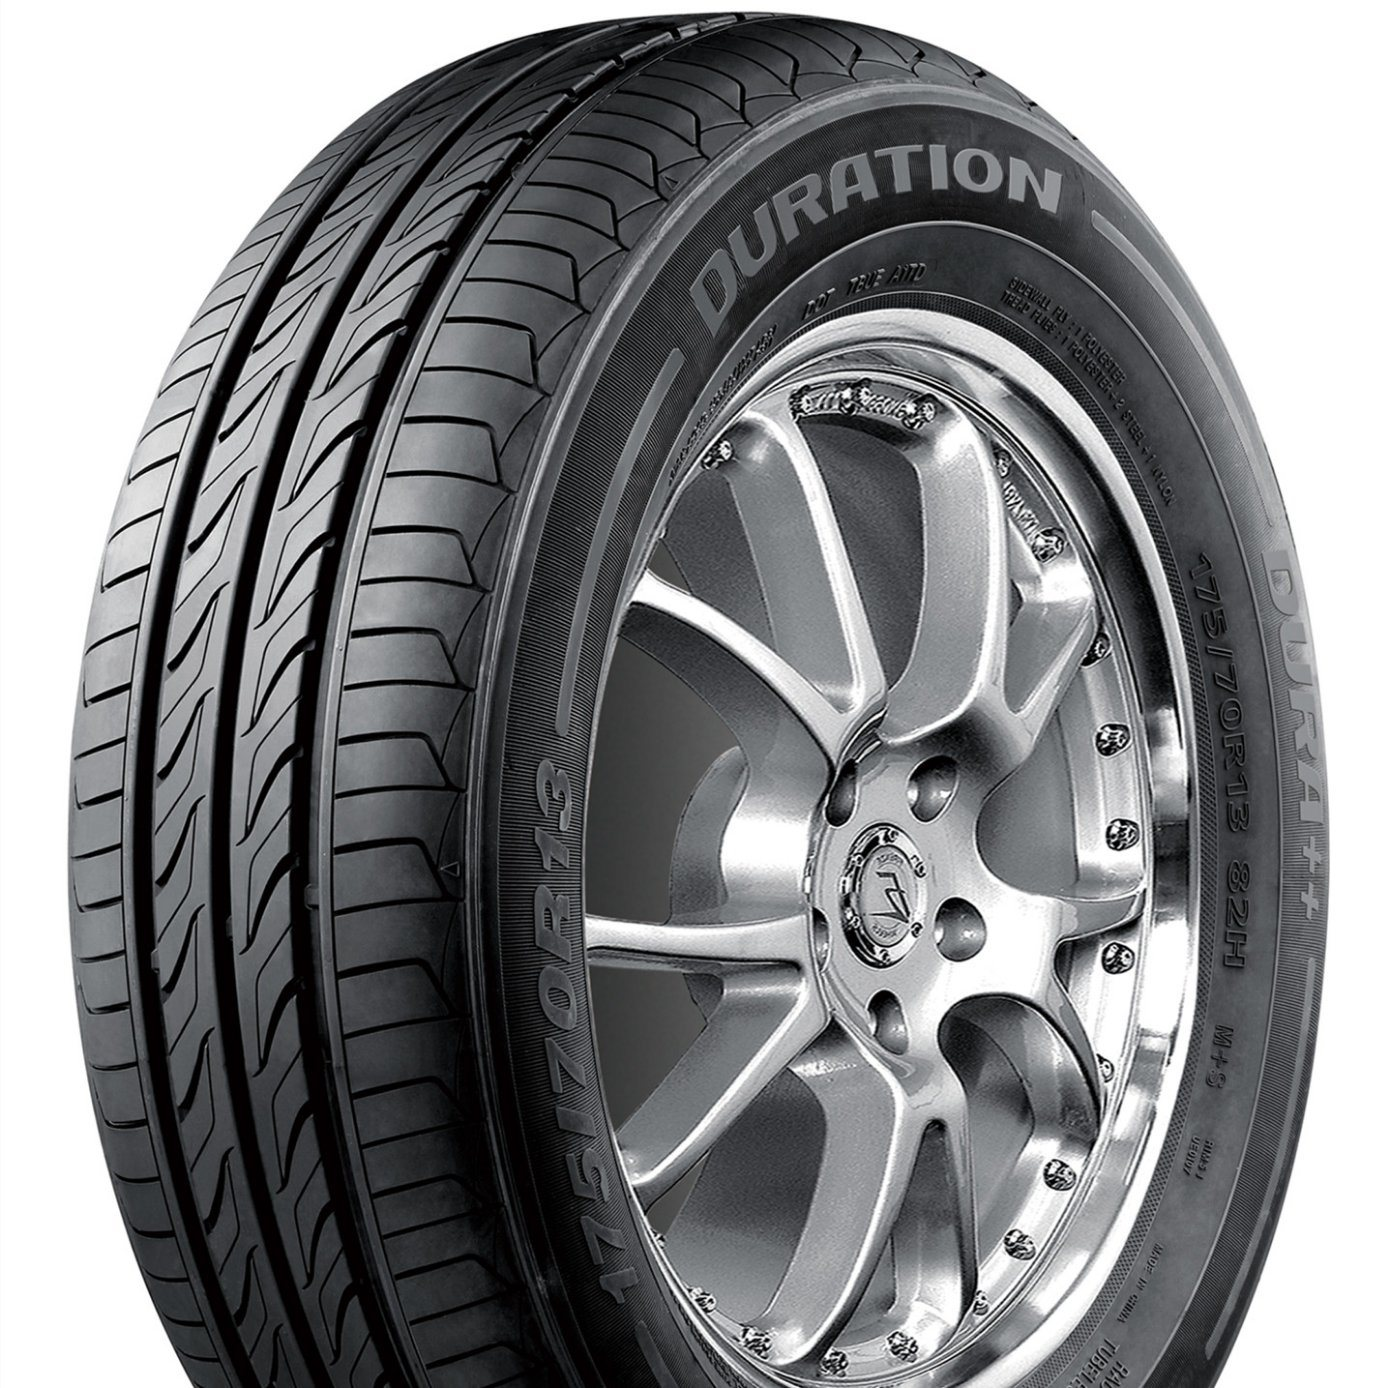 Wholesale Tires Near Me >> Wholesale Auto Tire Buy Reliable Auto Tire From Auto Tire